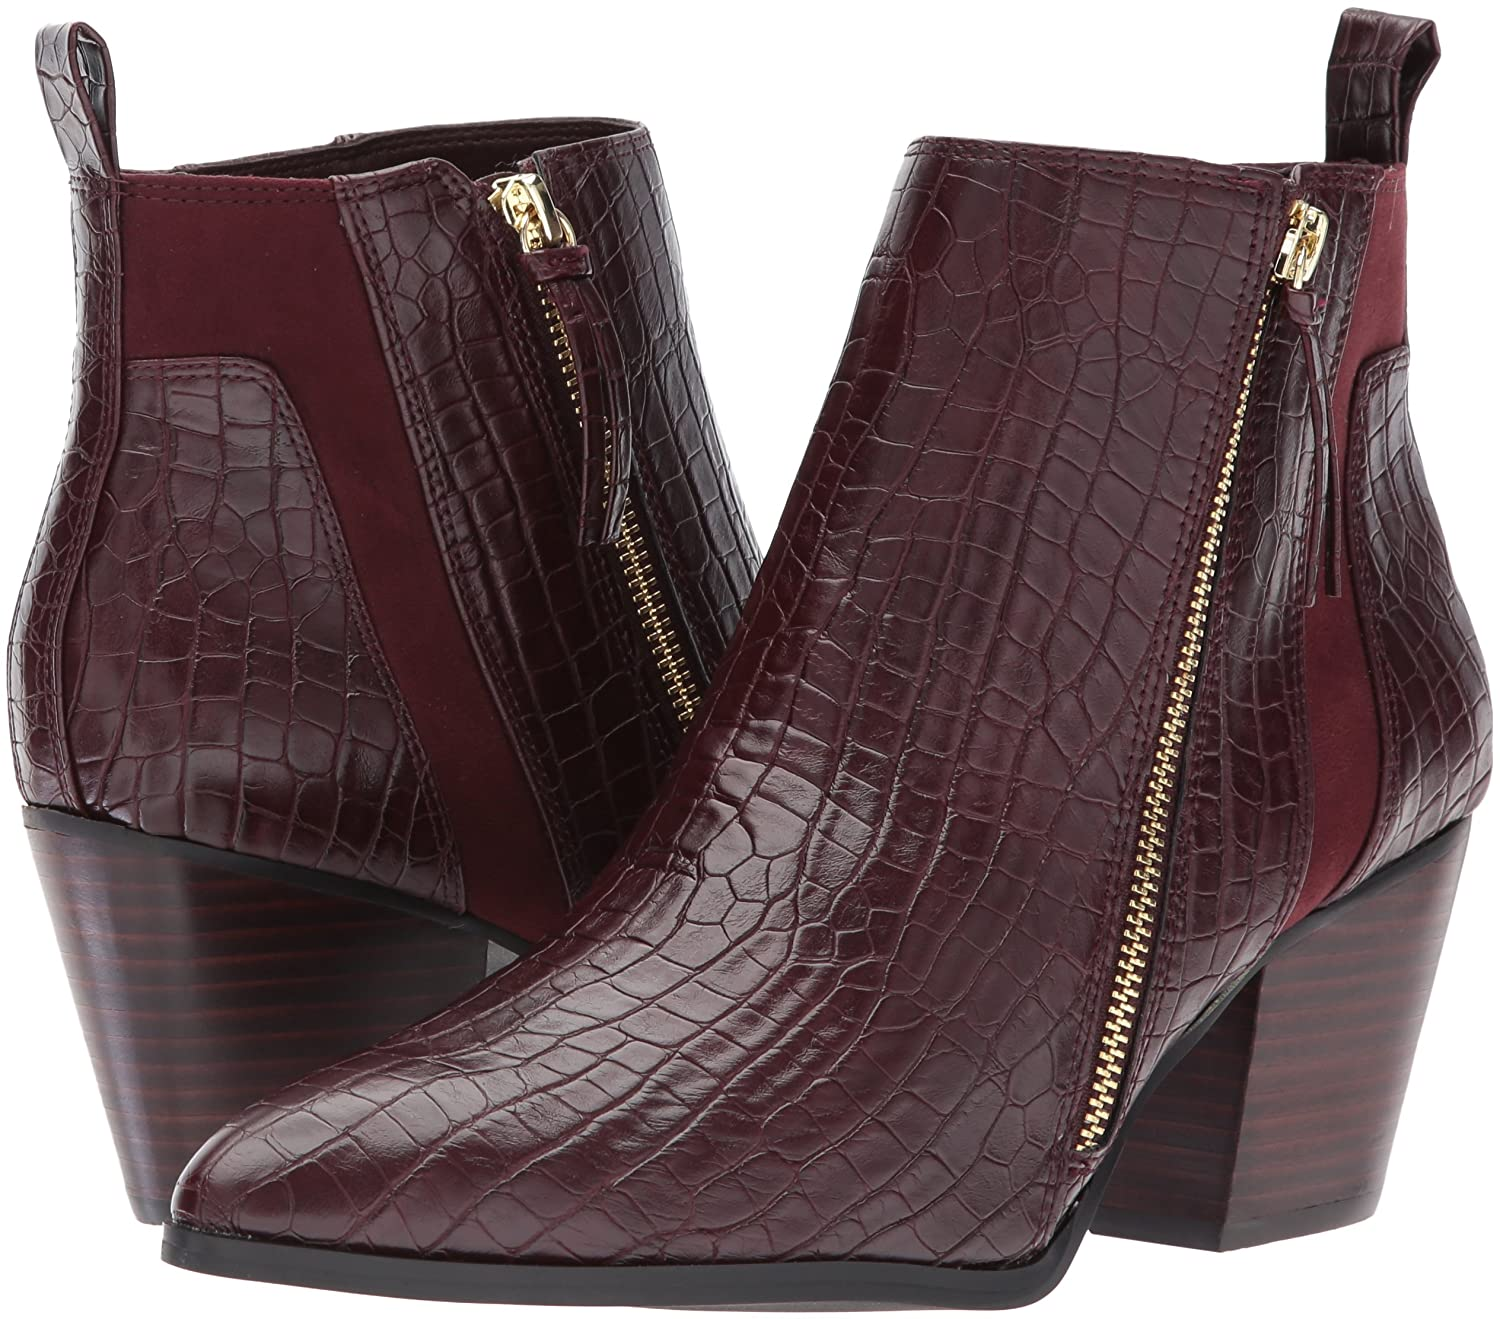 Bella Vita Bootie Women's Everest Ii Ankle Bootie Vita B073GFRLNH 8 W US|Burgundy Crocodile f65603